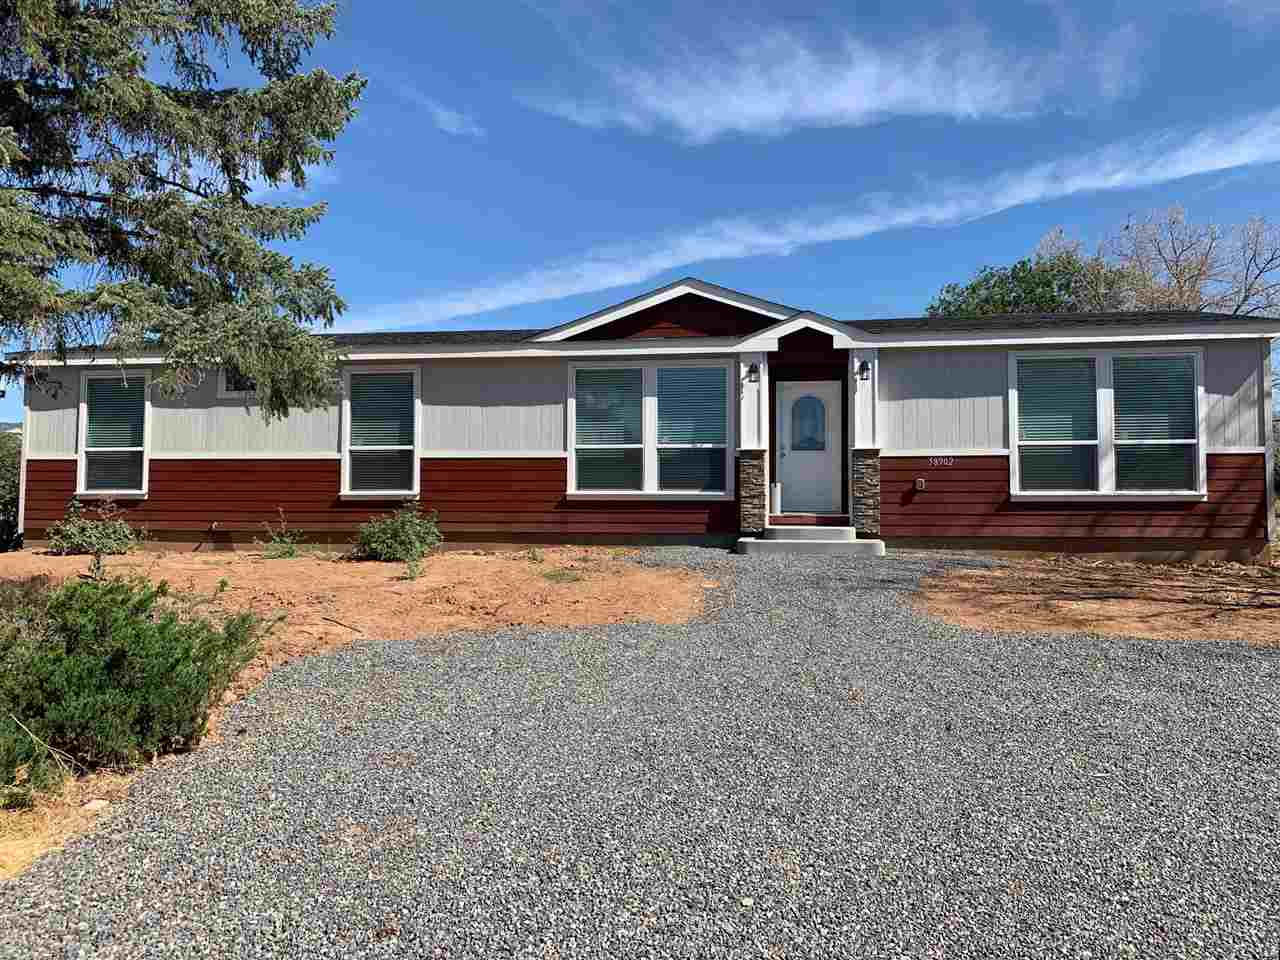 58902 Highway 330E, Collbran, CO 81624